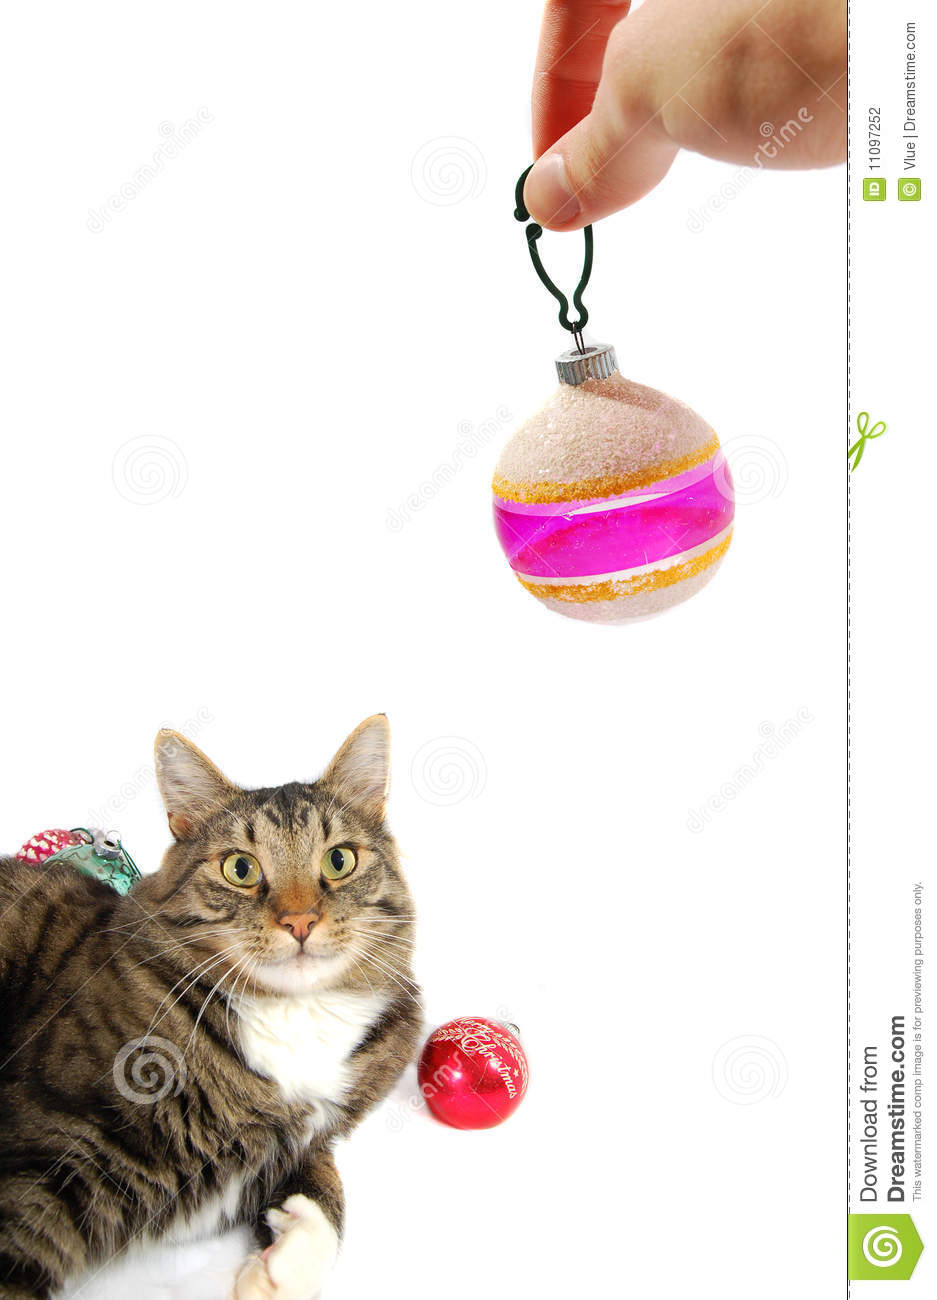 Hand Holding Christmas Ornament Next To Cat Stock Photo - Image of ...